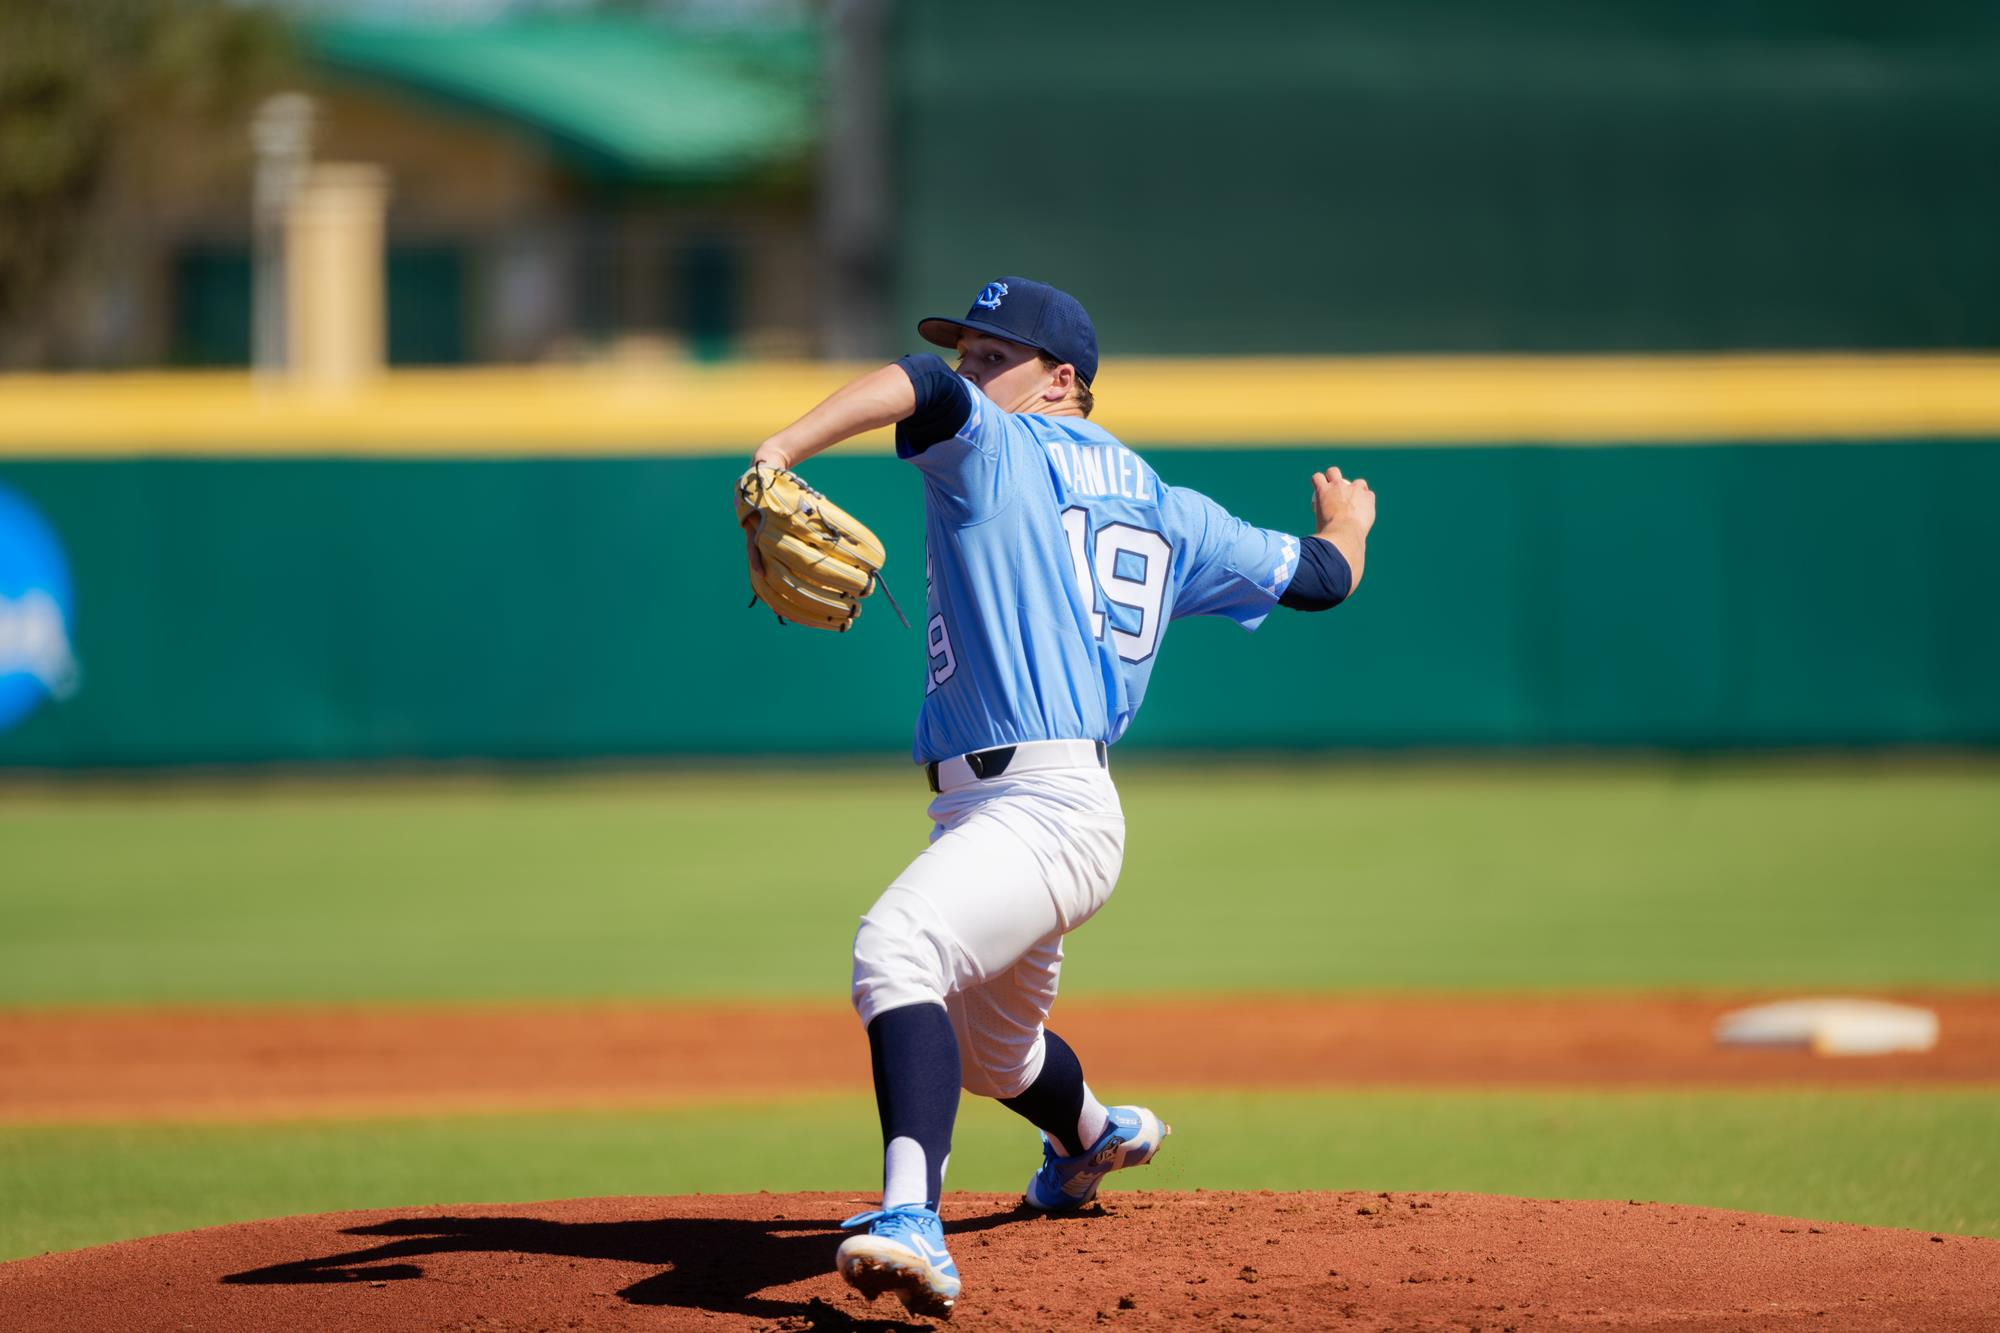 unc baseball avoids series sweep at no. 13 louisville, hands